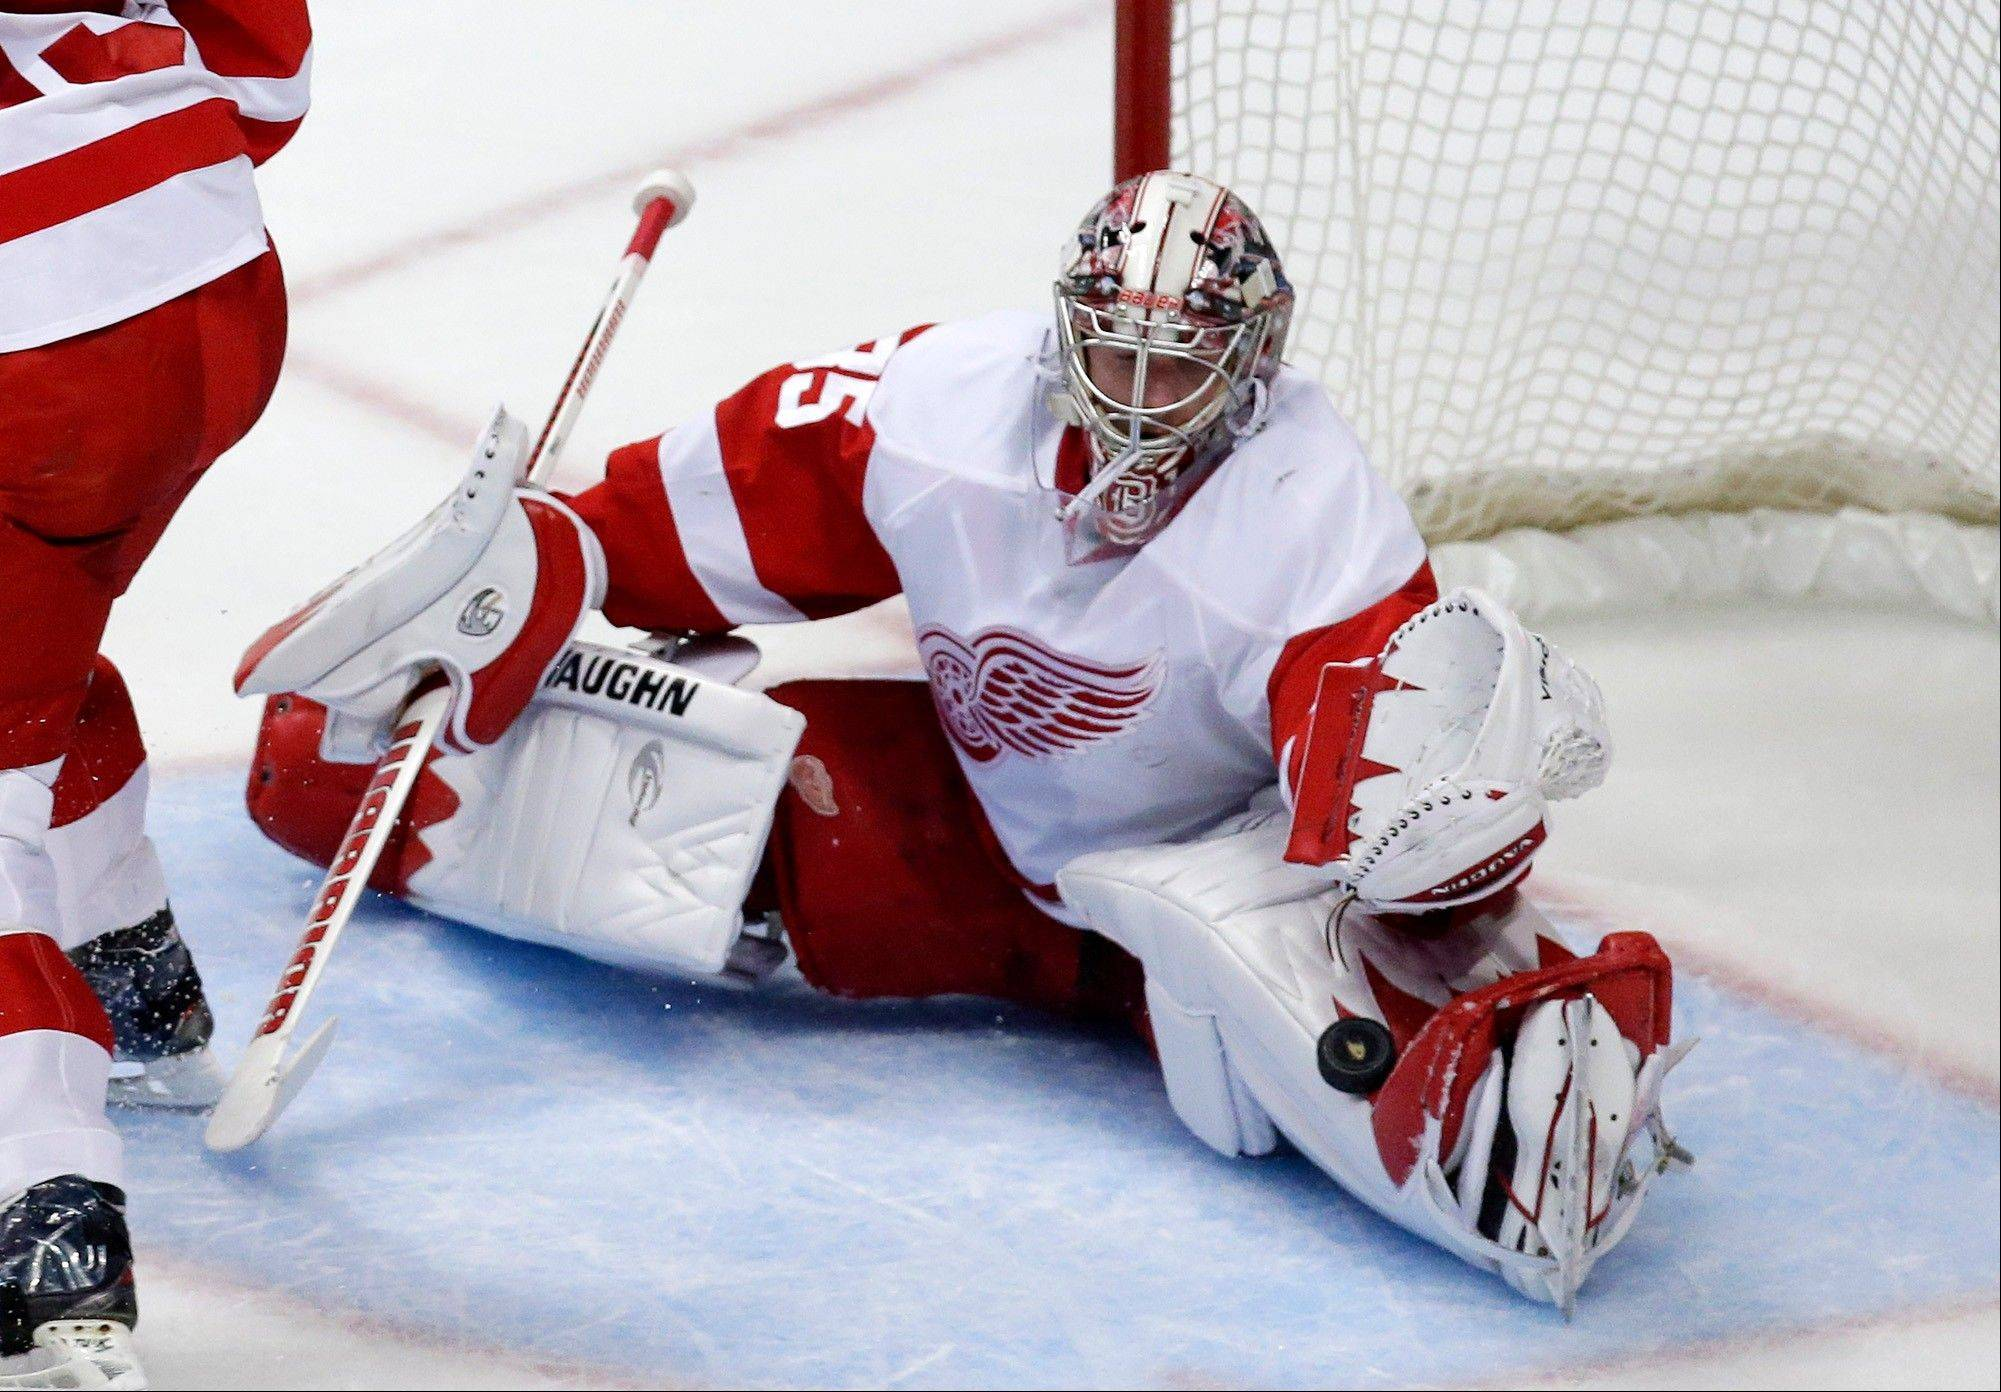 Detroit Red Wings goalie Jimmy Howard stops a shot during the first period in Game 7 of their first-round NHL hockey Stanley Cup playoff series against the Anaheim Ducks in Anaheim, Calif., Sunday, May 12, 2013.